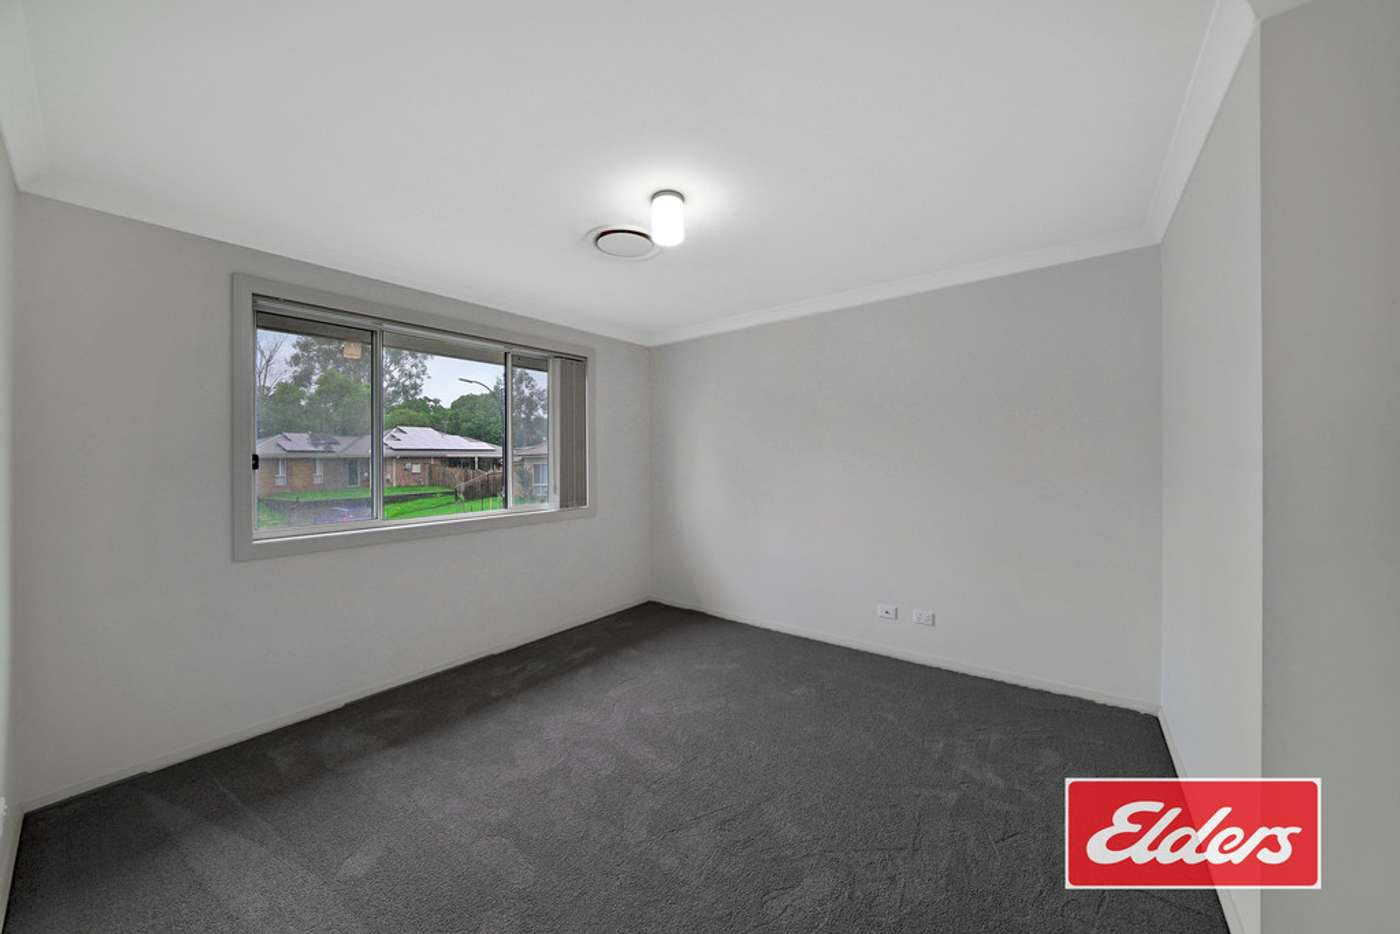 Sixth view of Homely house listing, 16 TAHMOOR HOUSE COURT, Tahmoor NSW 2573